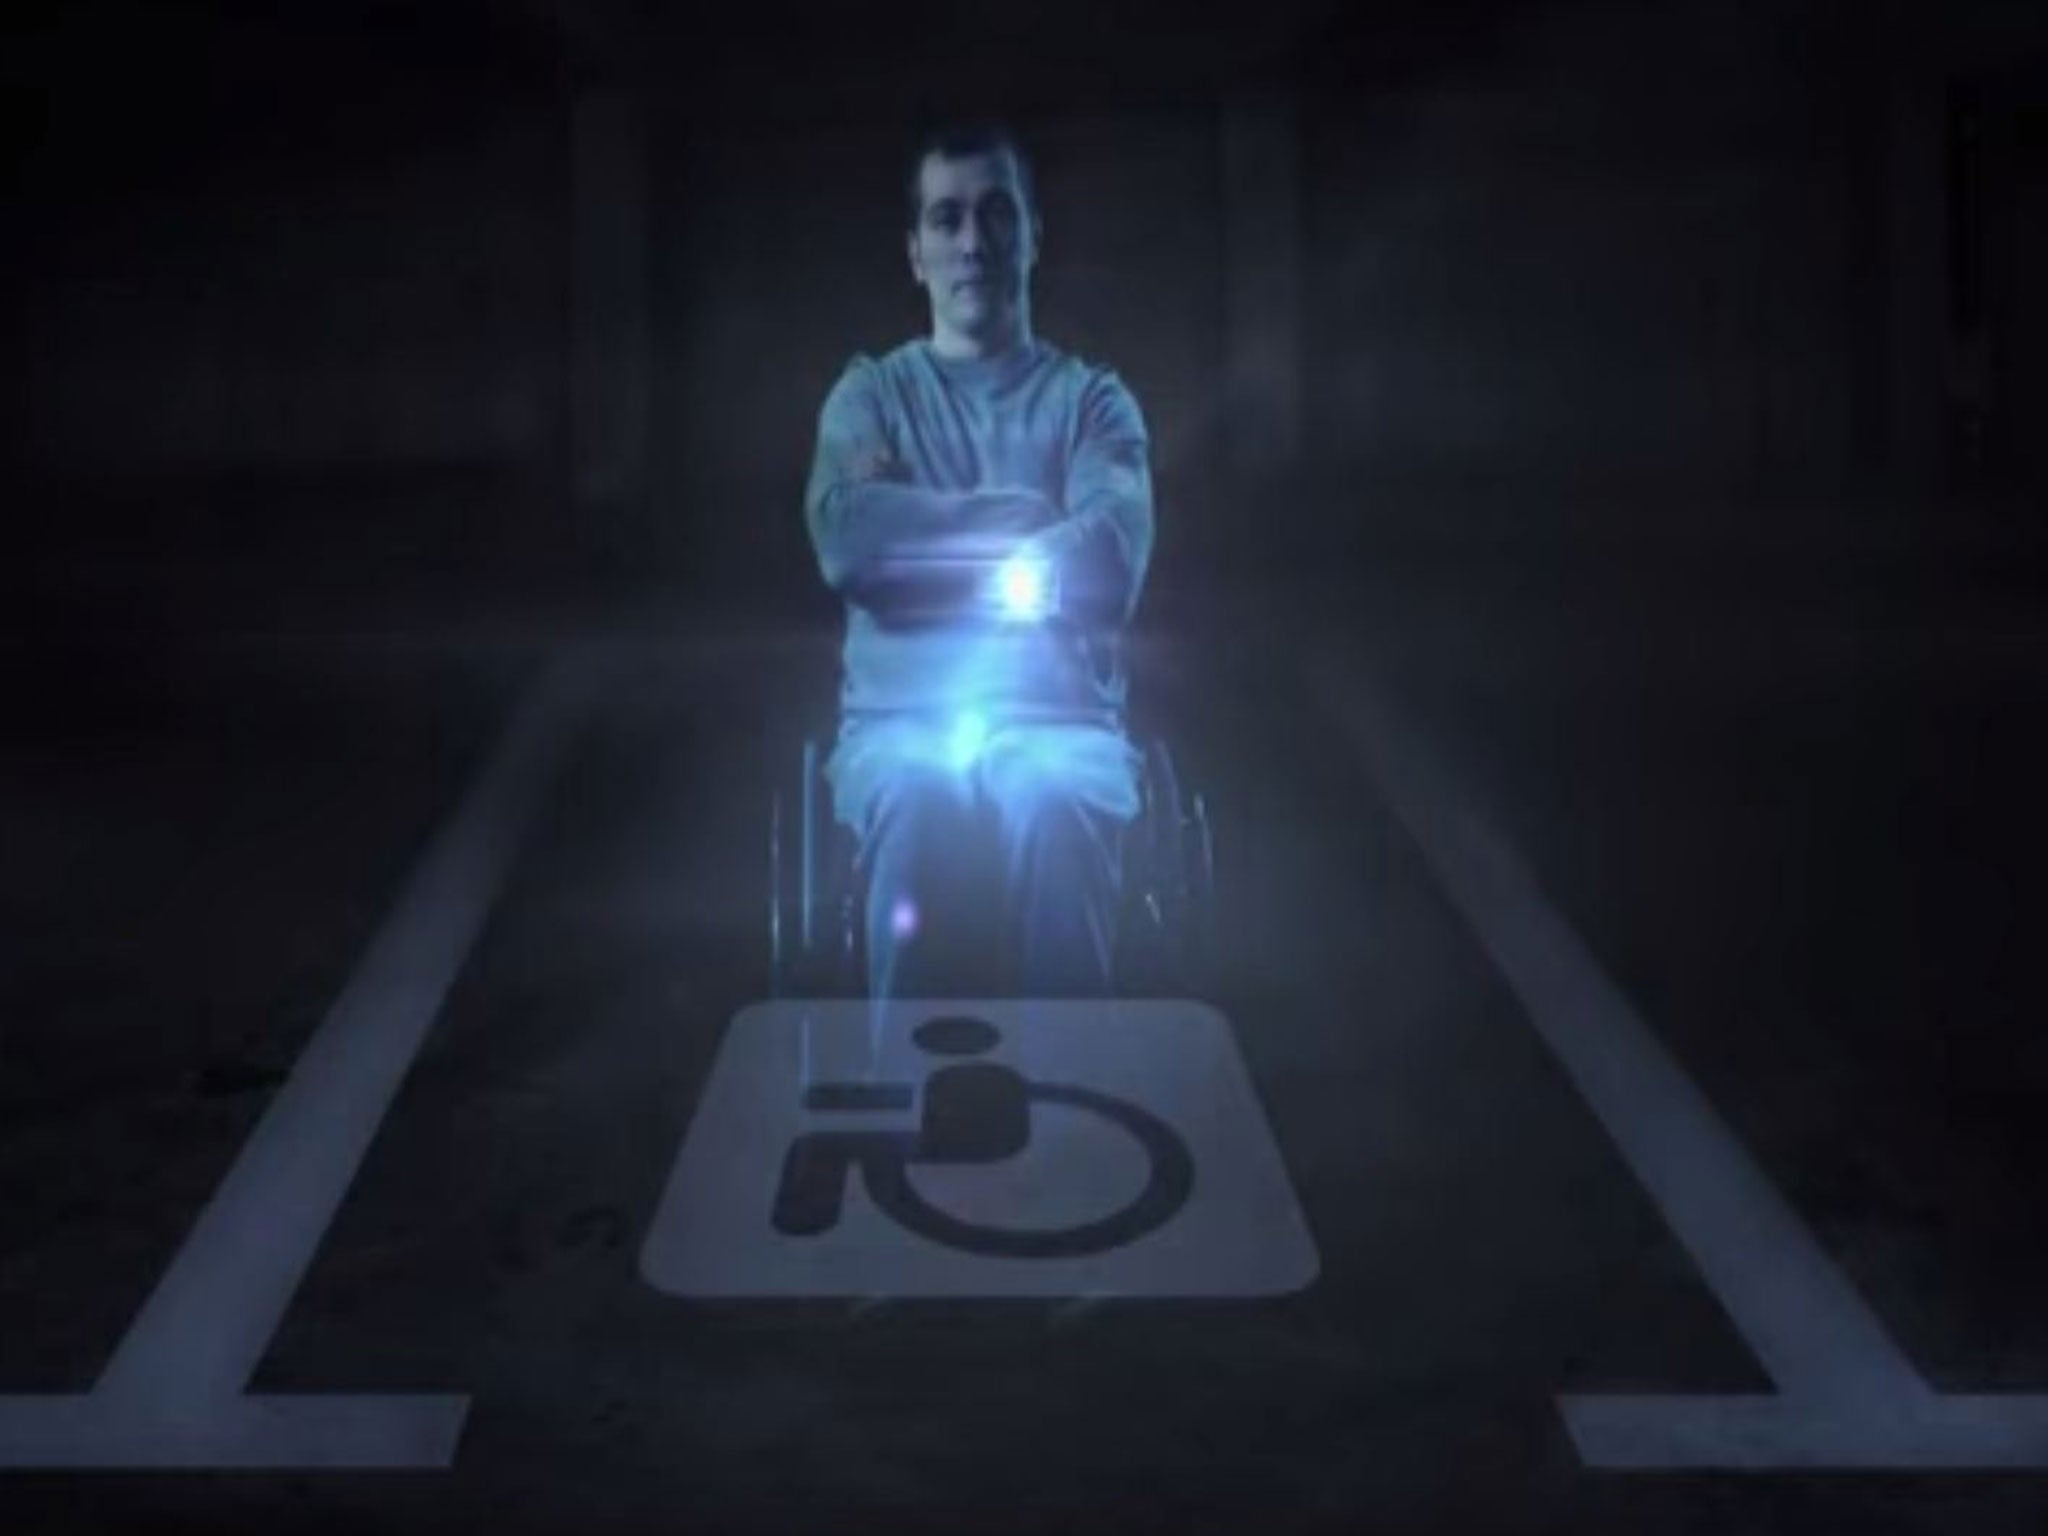 Russia Has Created A Disabled Hologram To Stop Illegal Parkers